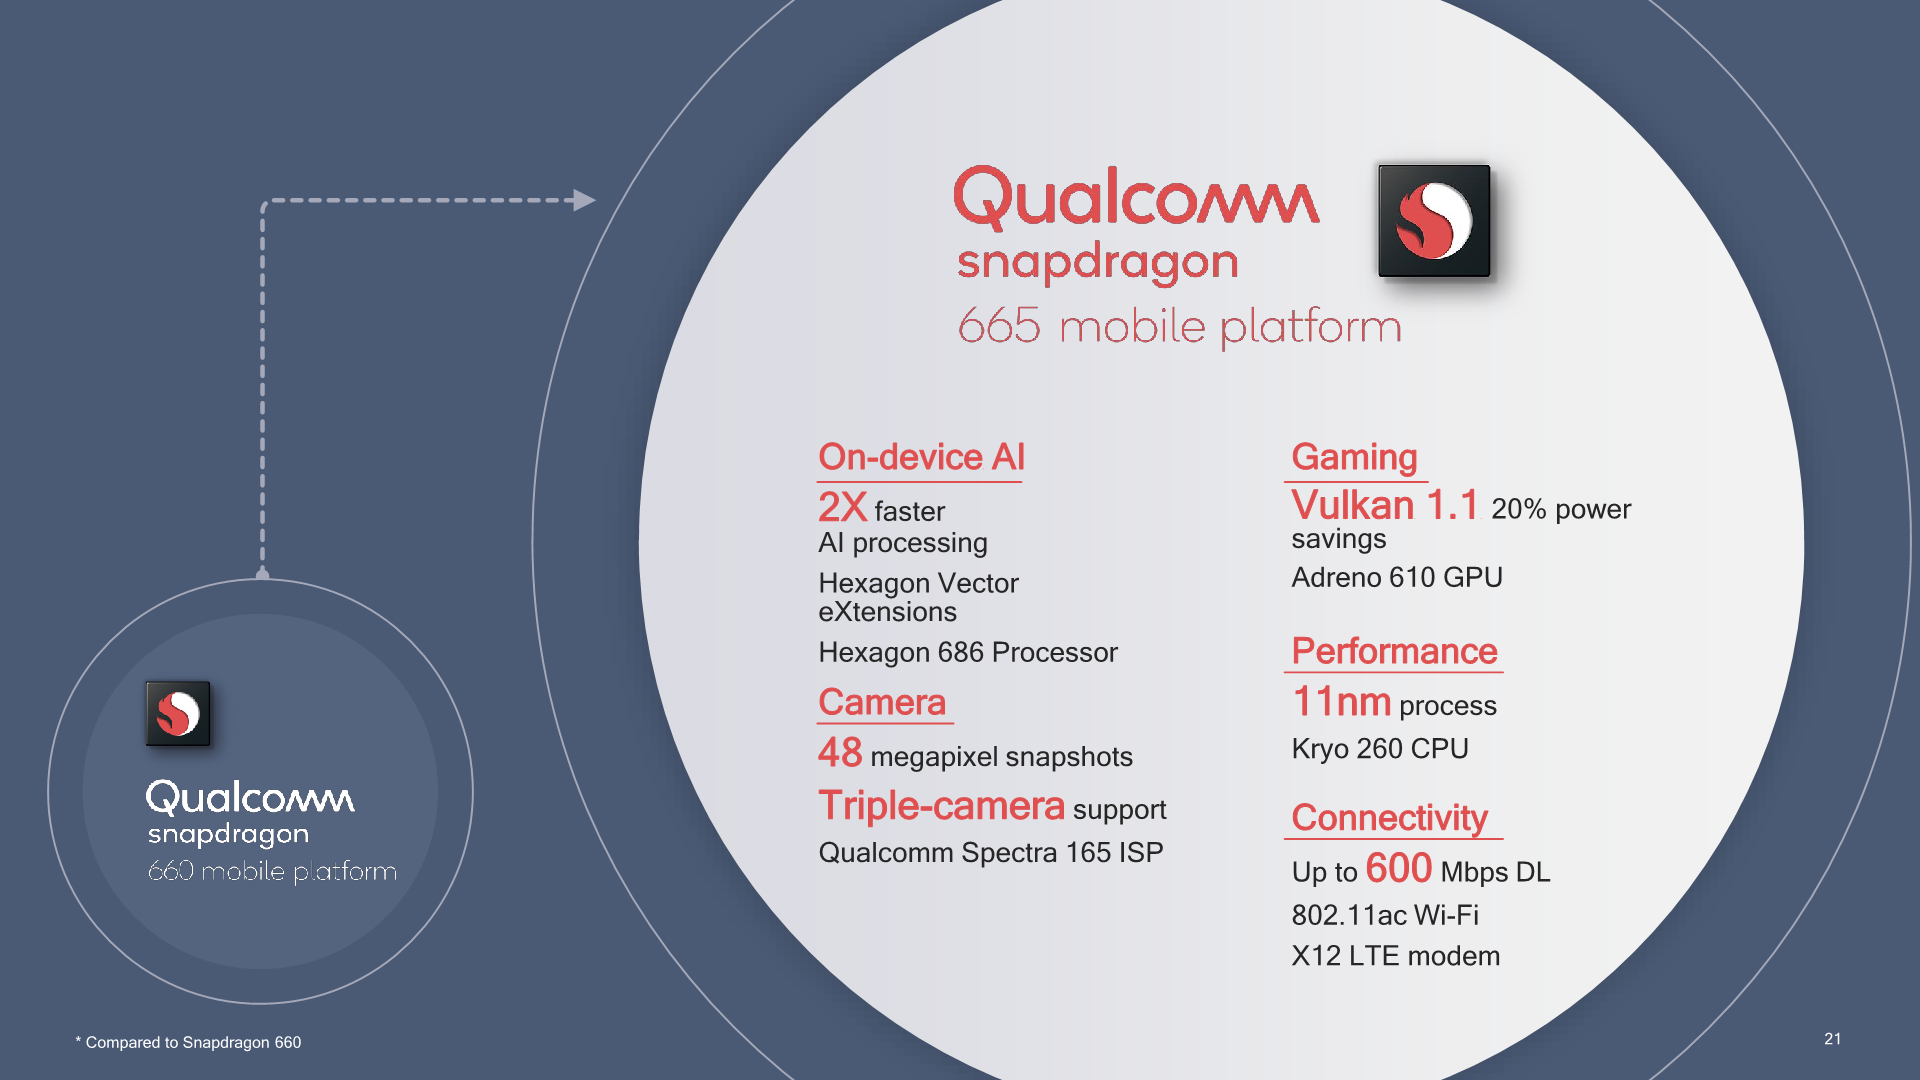 Qualcomm announces Snapdragon 730, 730G and 665 mobile platforms